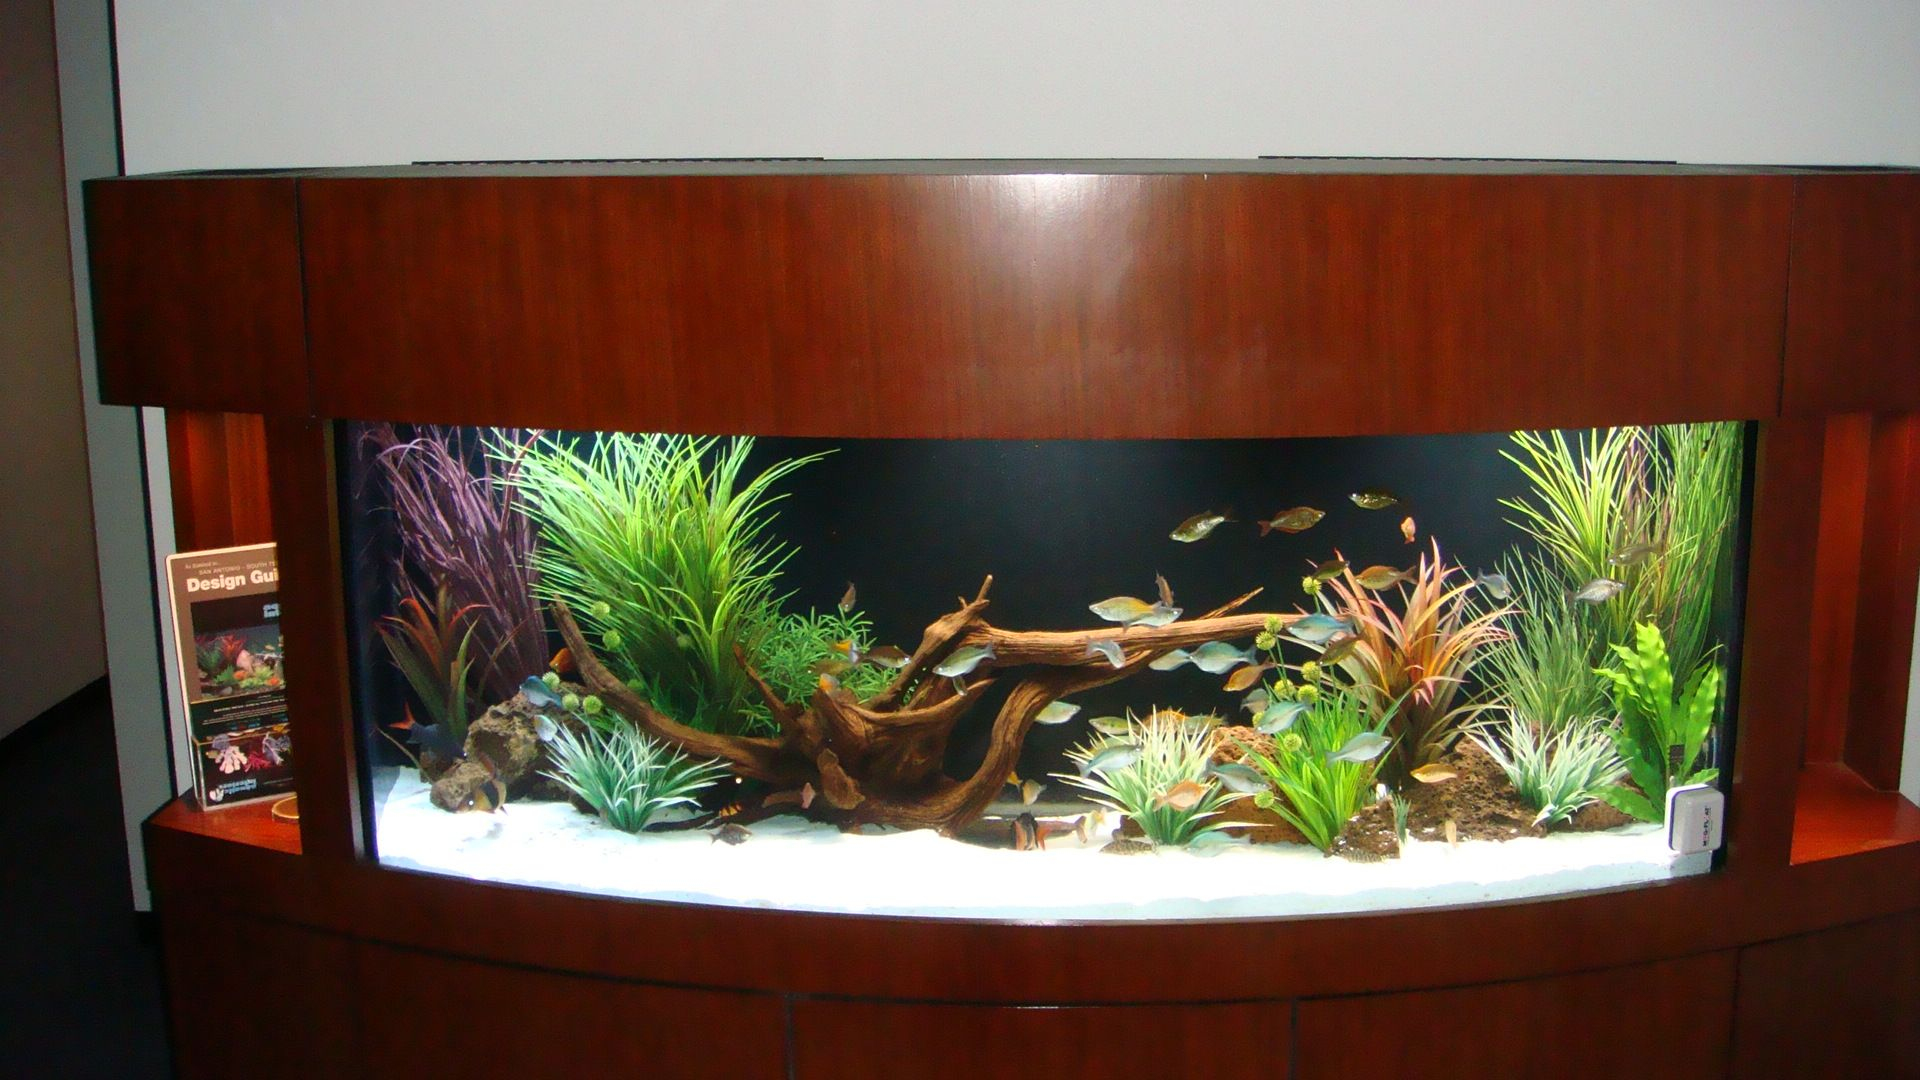 Transform the Way Your Home Looks Using a Fish Tank | Fish tank ...